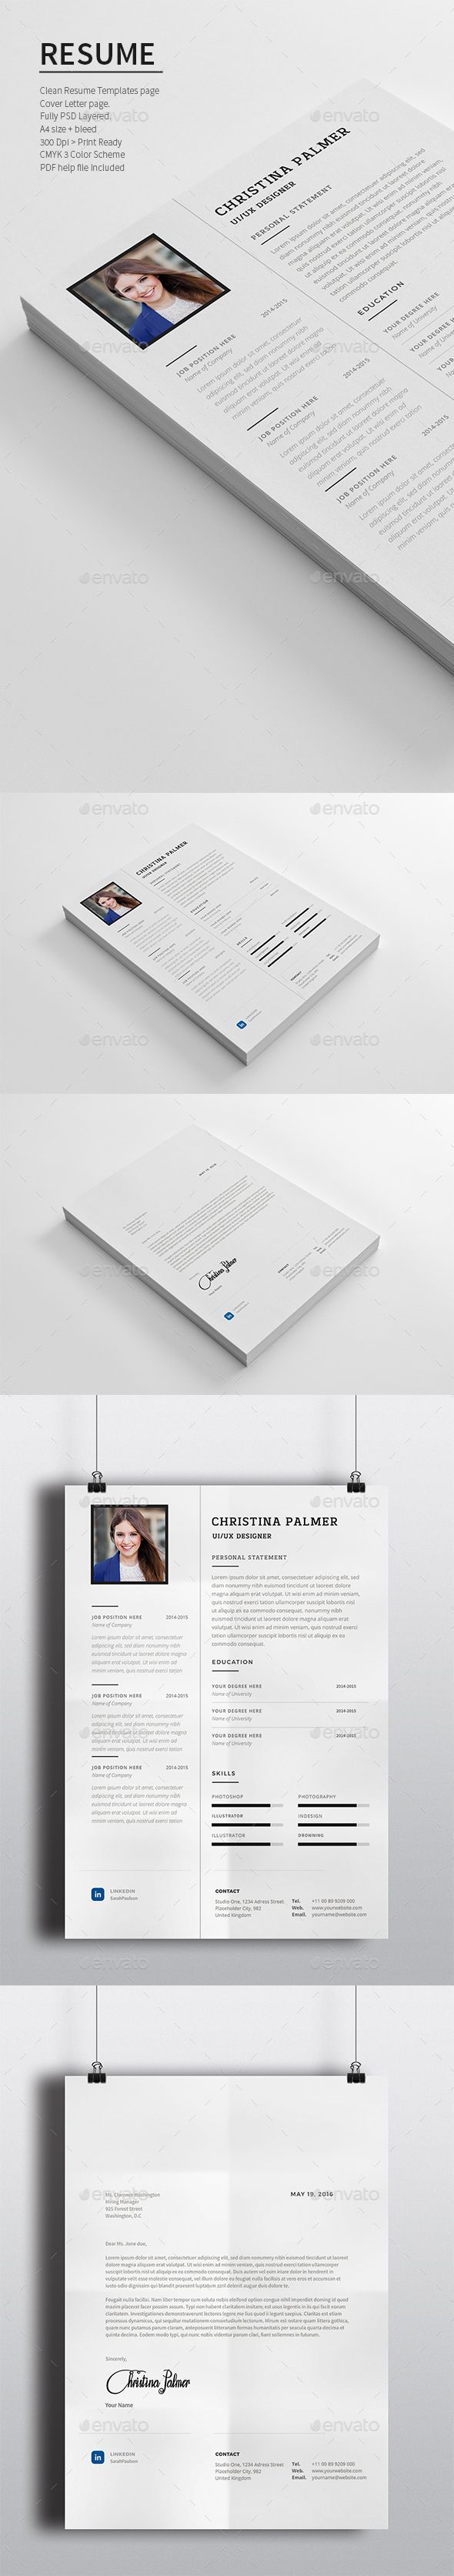 Resume — Photoshop PSD #stylish cv template #ms word • Available ...